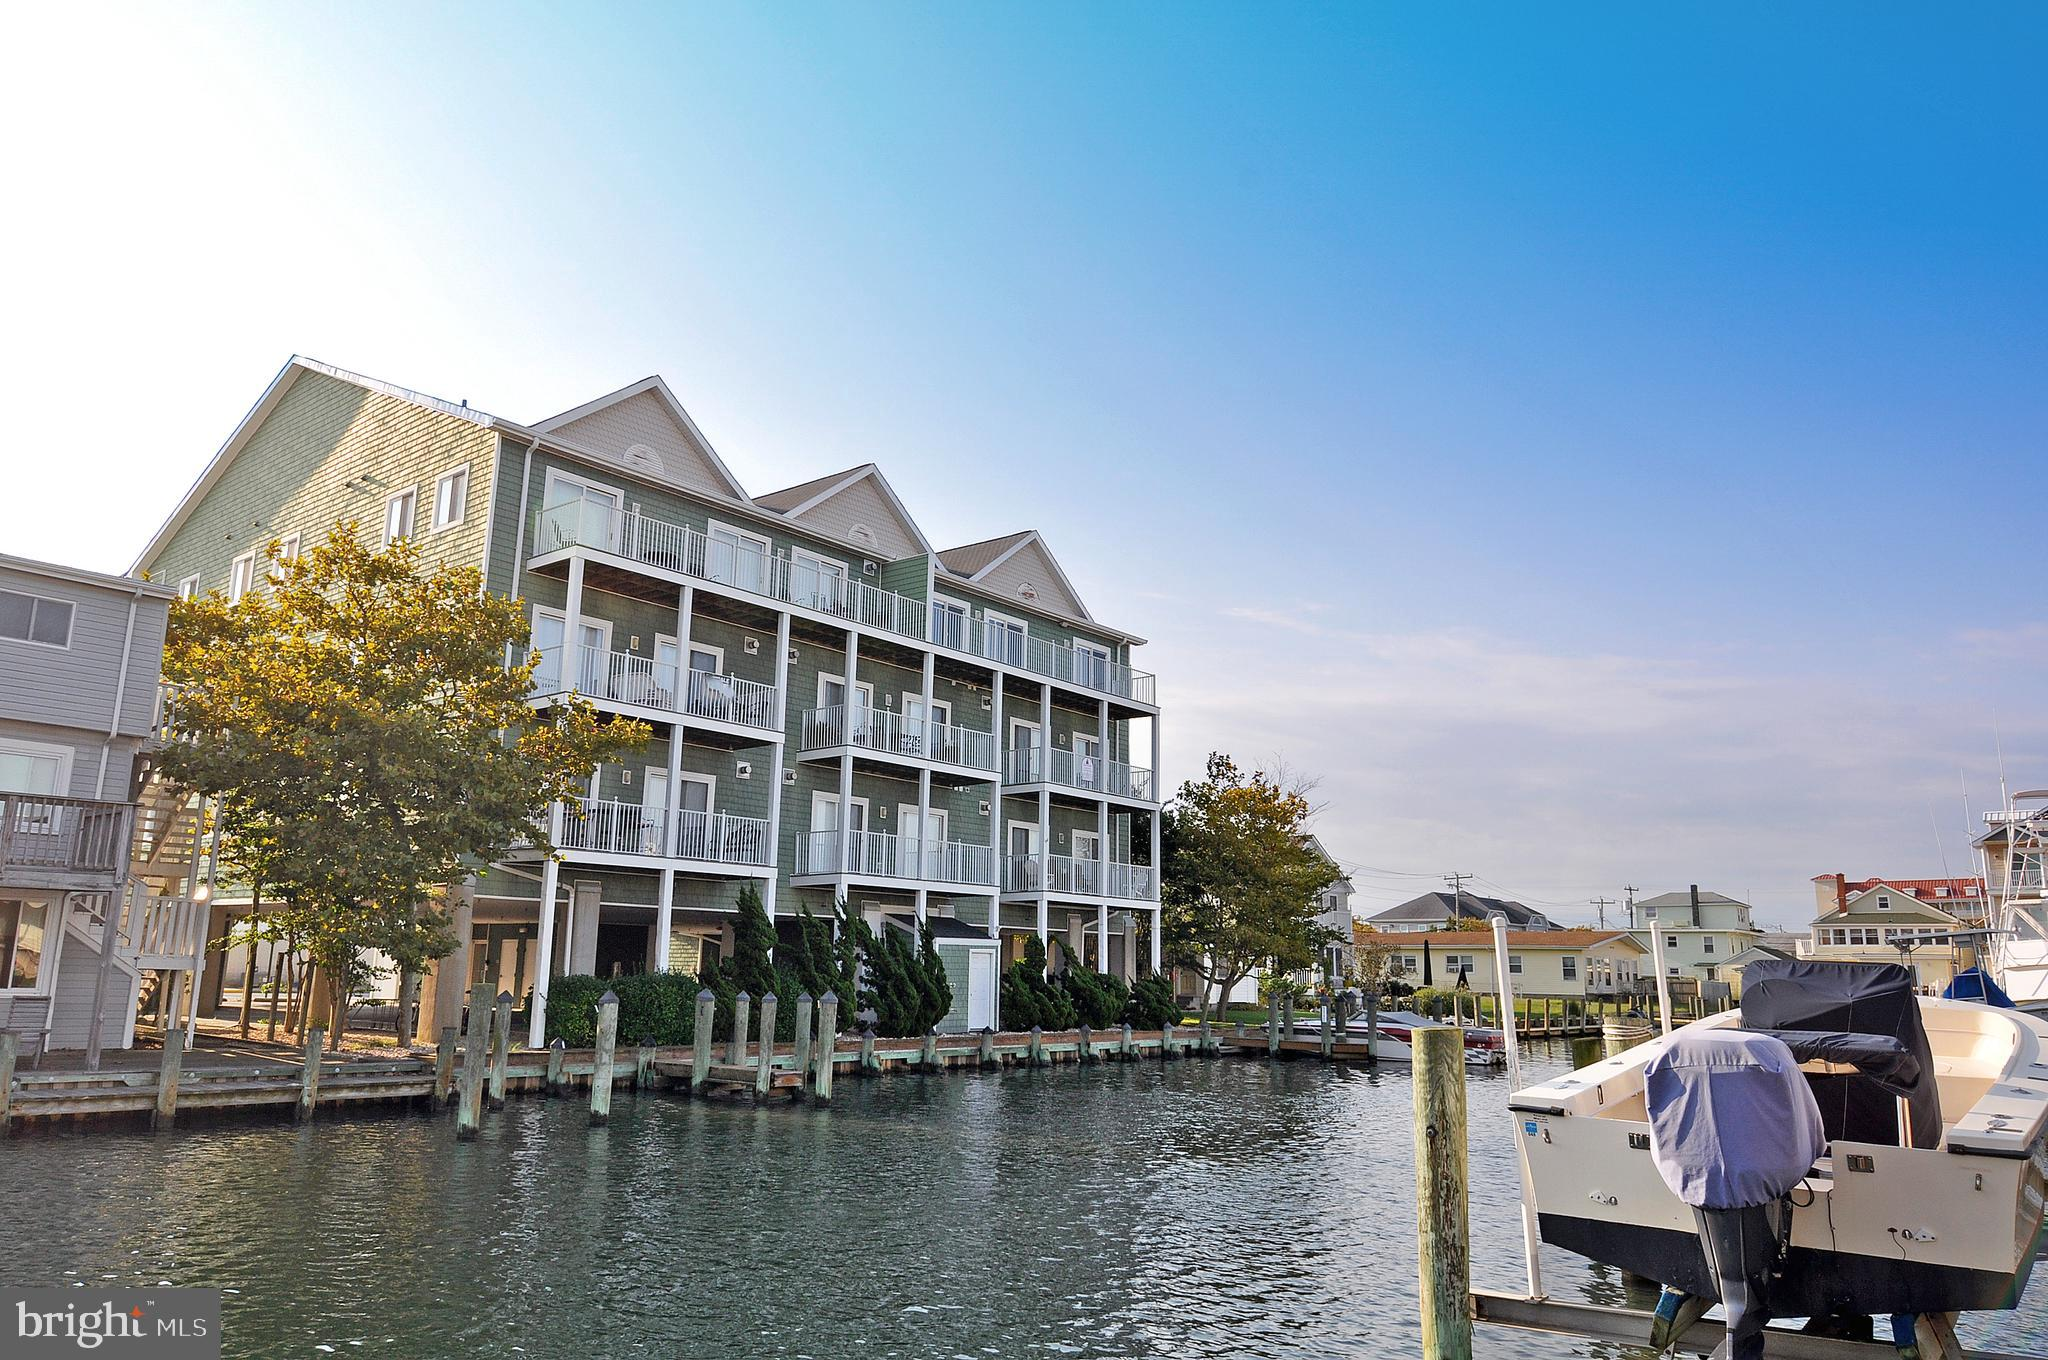 Beautiful 3 bedroom 3 bath bay side waterfront condo within a 3 minute stroll to the beach and boardwalk!~ Featuring many upgrades including gas fireplace, stainless steel appliances, storage closet, separate laundry room with shelving,~ ceramic tile floors & hardwood floors, granite counters, spa tub & more.~ The building has covered parking, community docks, outside shower, elevator, bike storage and secure lobby entrance. Watch sunsets from your rear private balcony or the air show from your front porch.~ Great 2nd home or could make fantastic rental.~